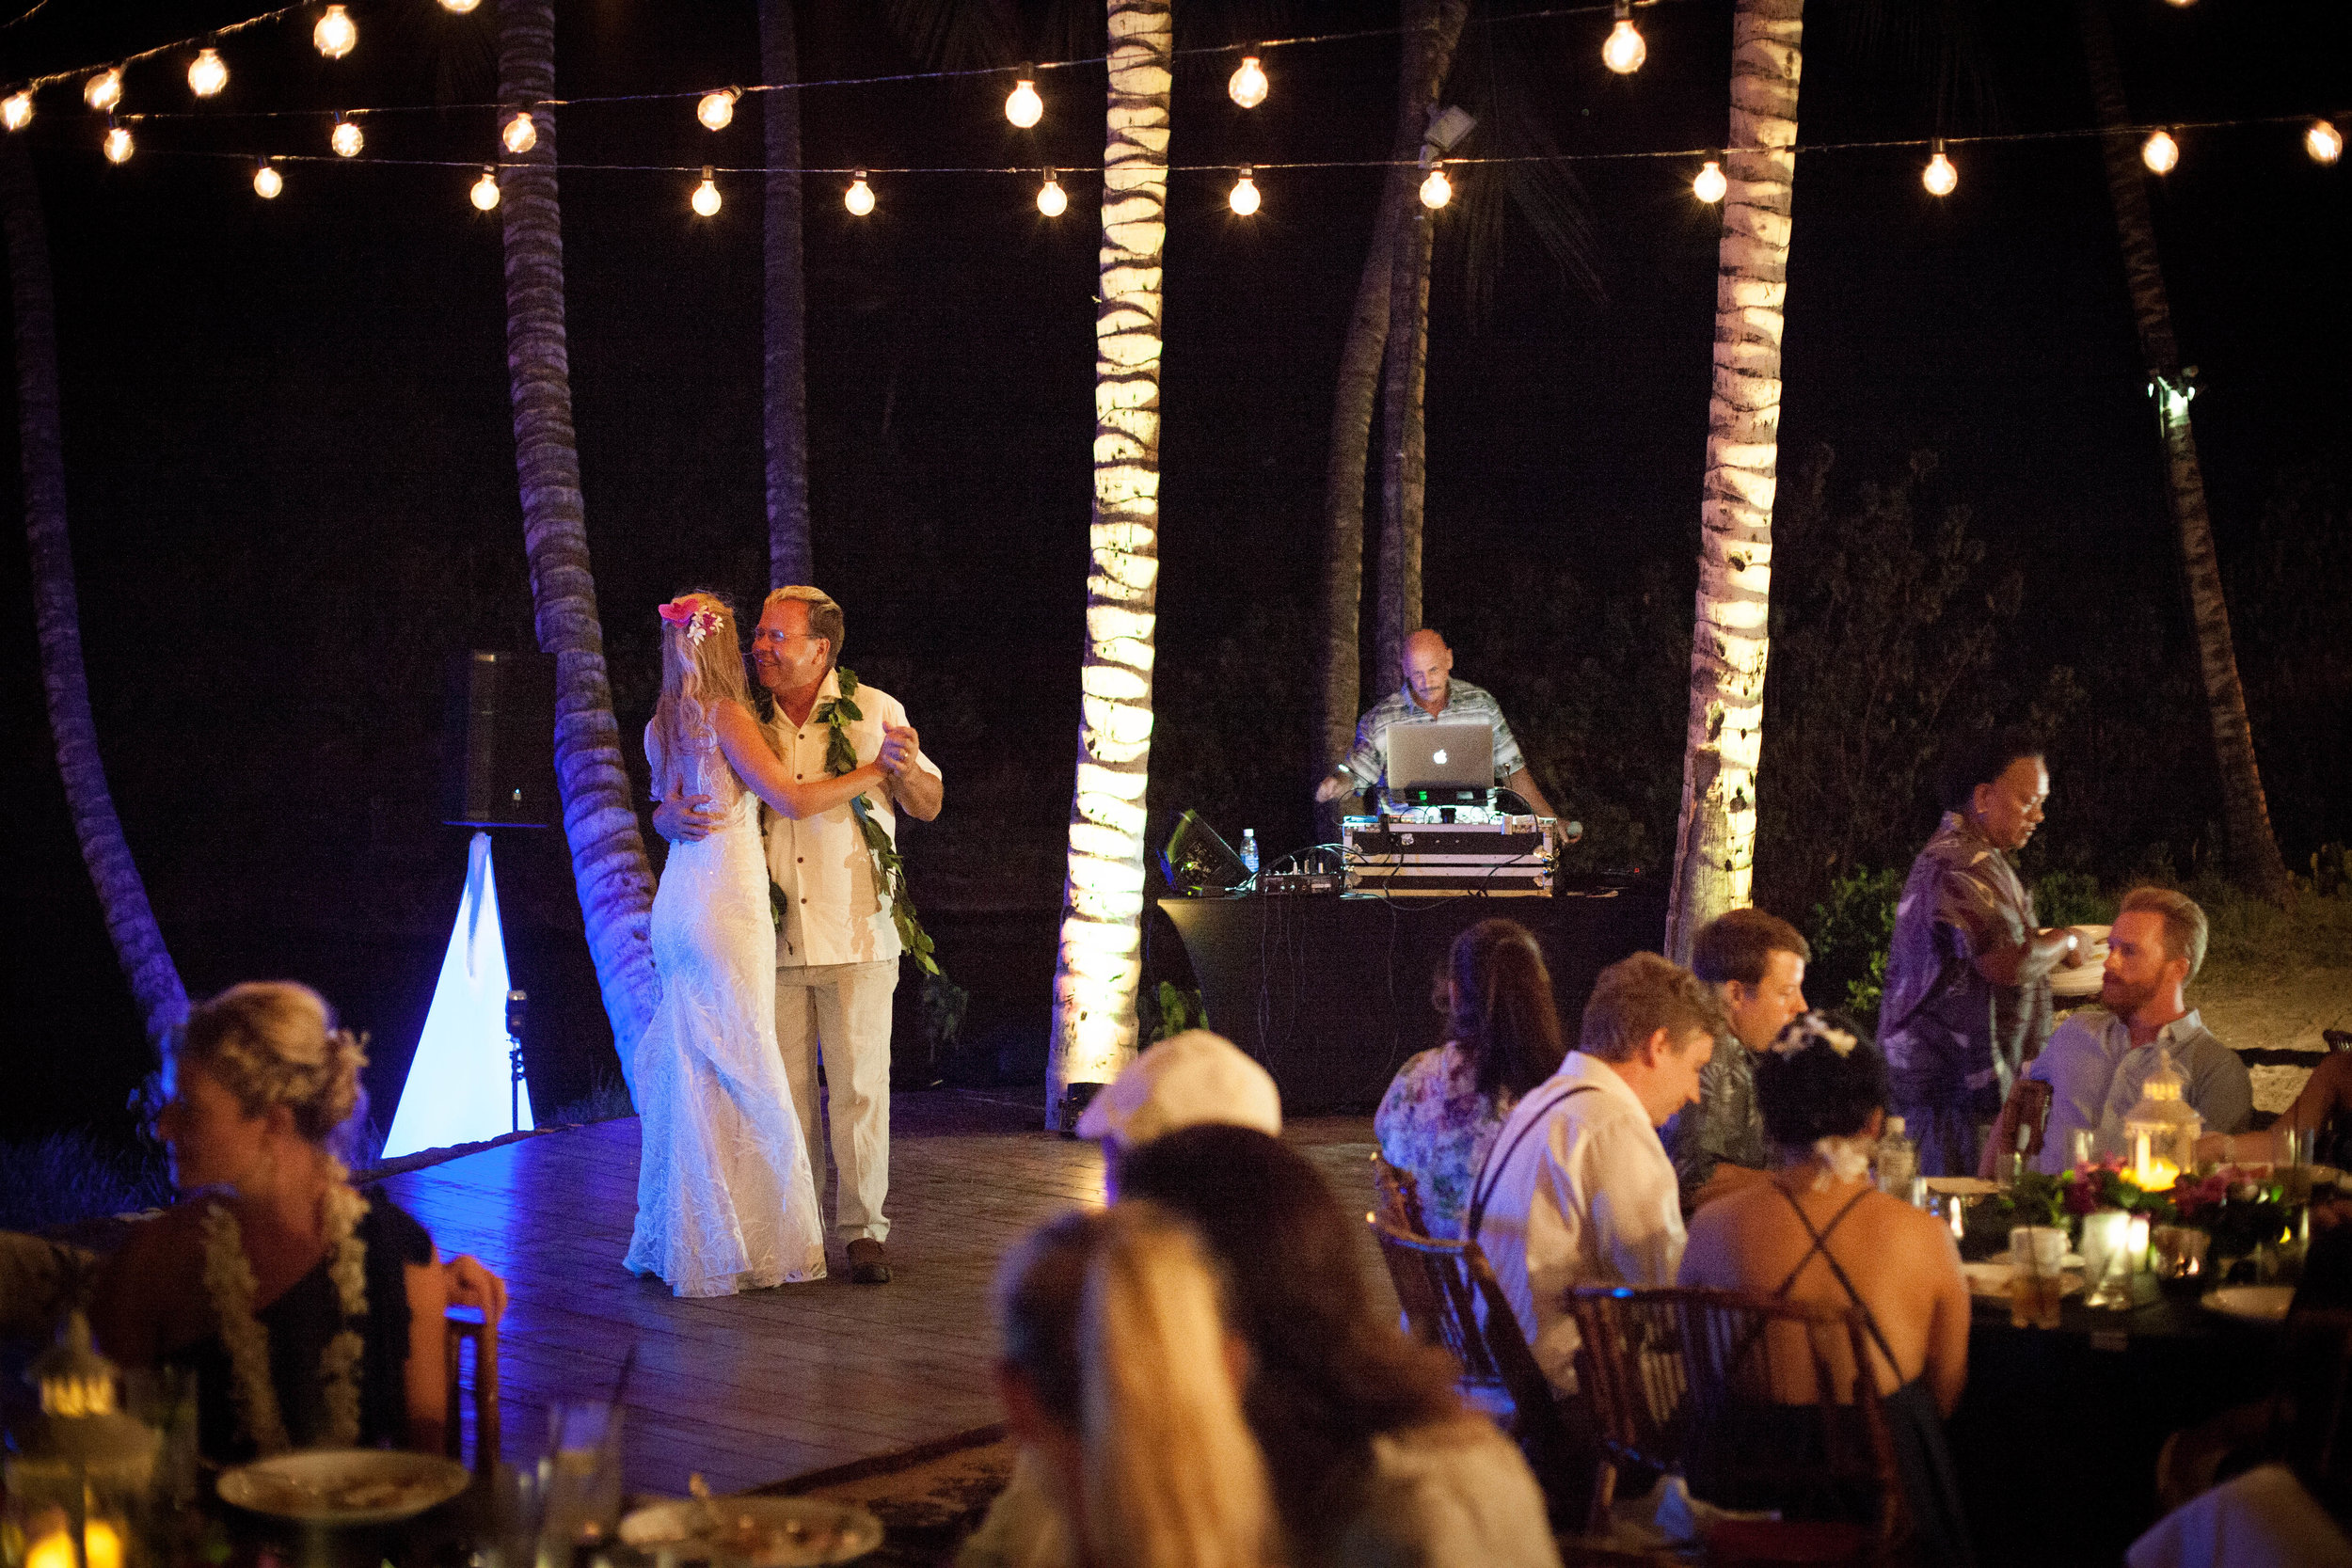 big island hawaii fairmont orchid beach wedding © kelilina photography 20170812210607-1.jpg